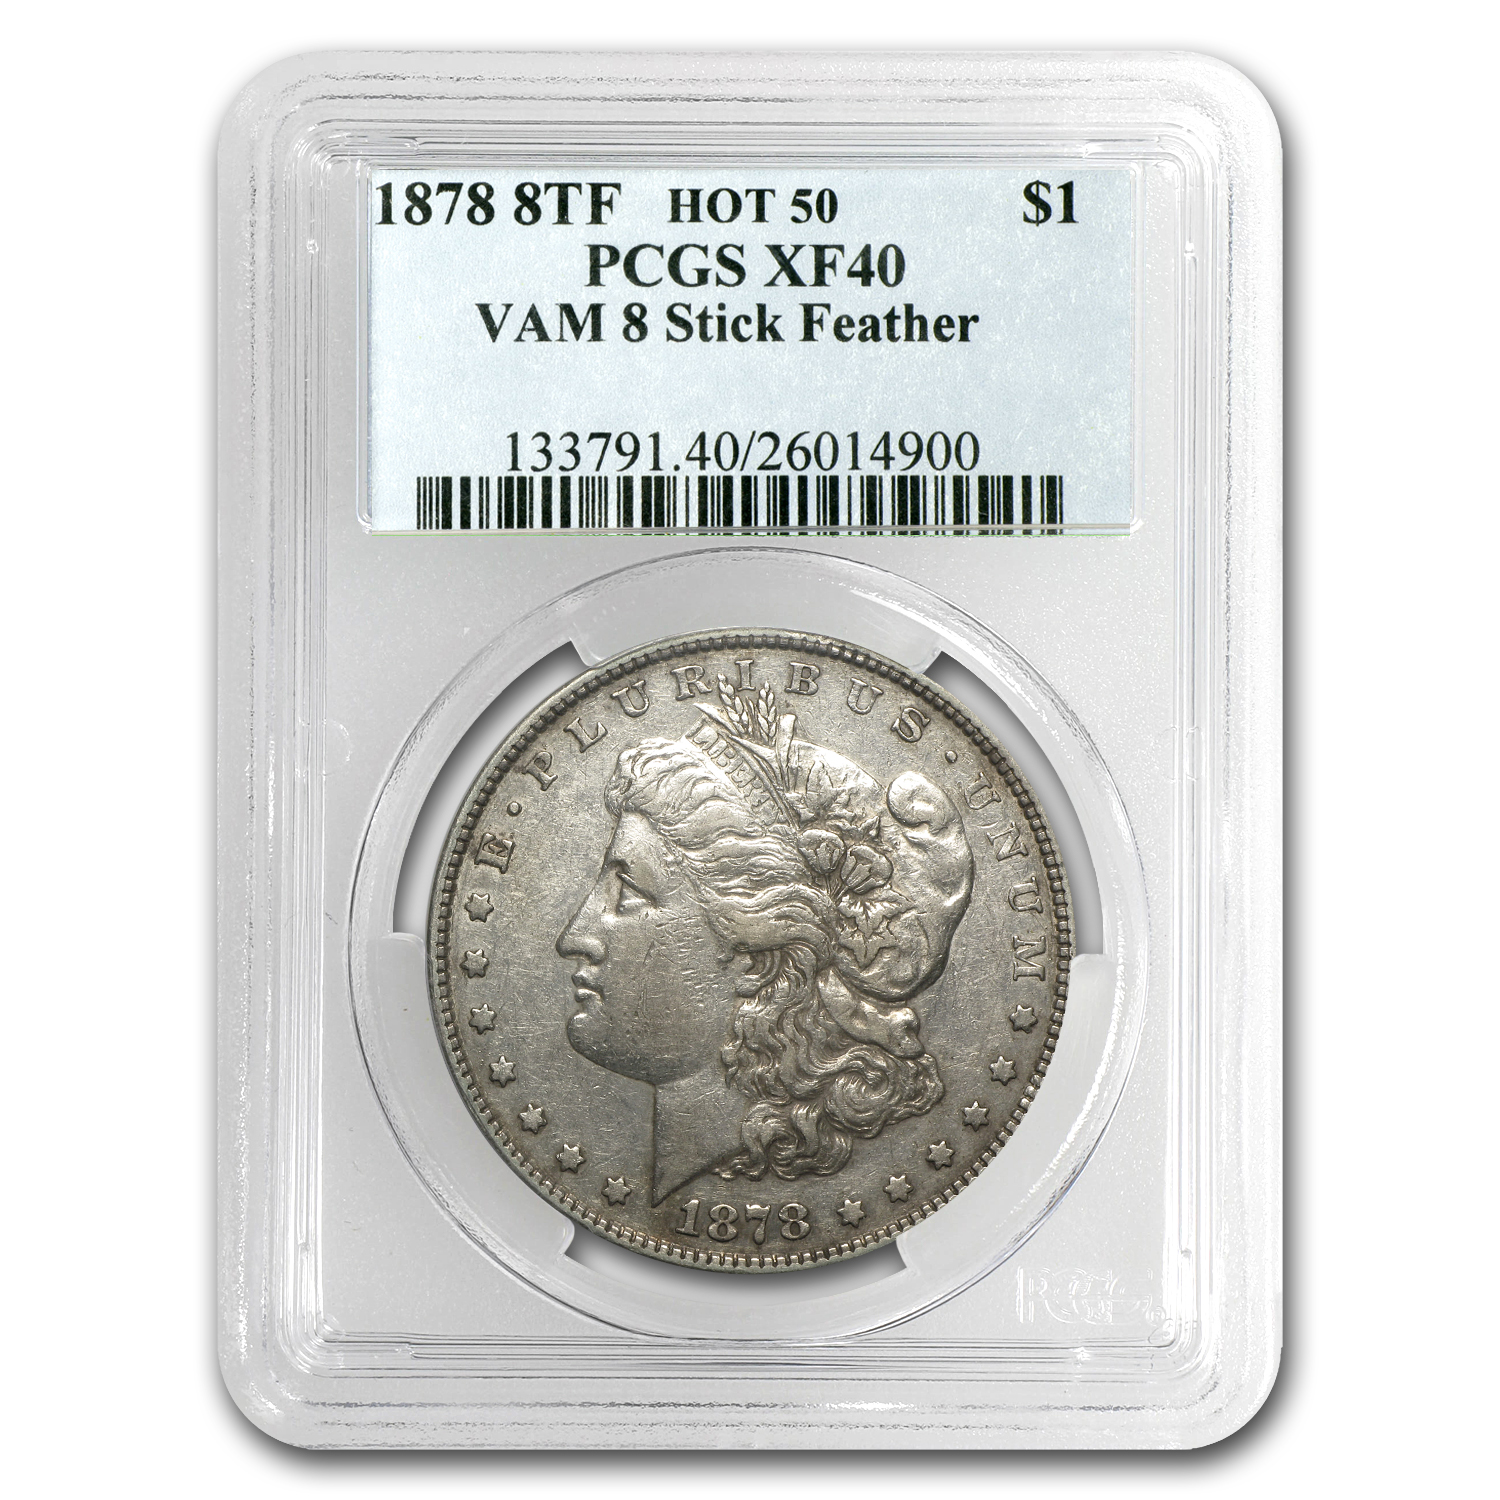 1878 Morgan Dollar - 8 TF XF-40 PCGS VAM-8 Stick Feather Hot-50